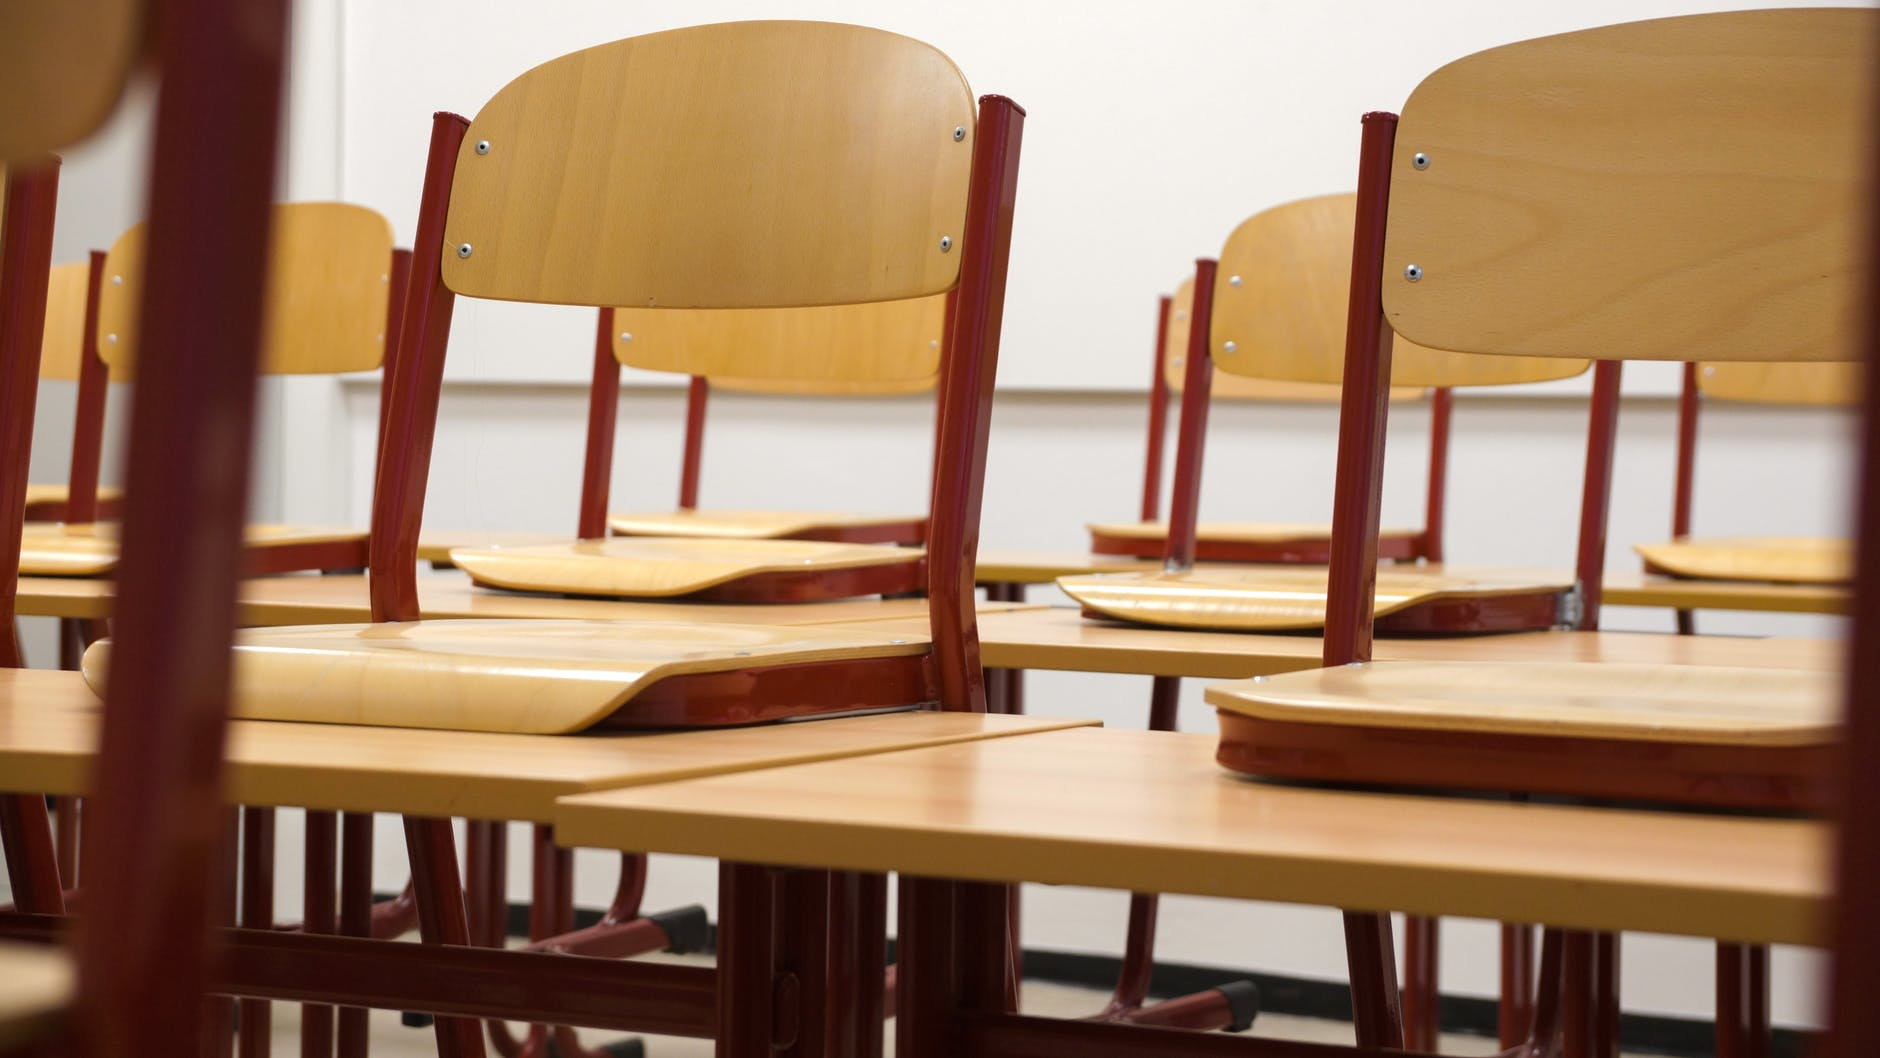 The Best Classroom Seating Arrangements for Student Learning